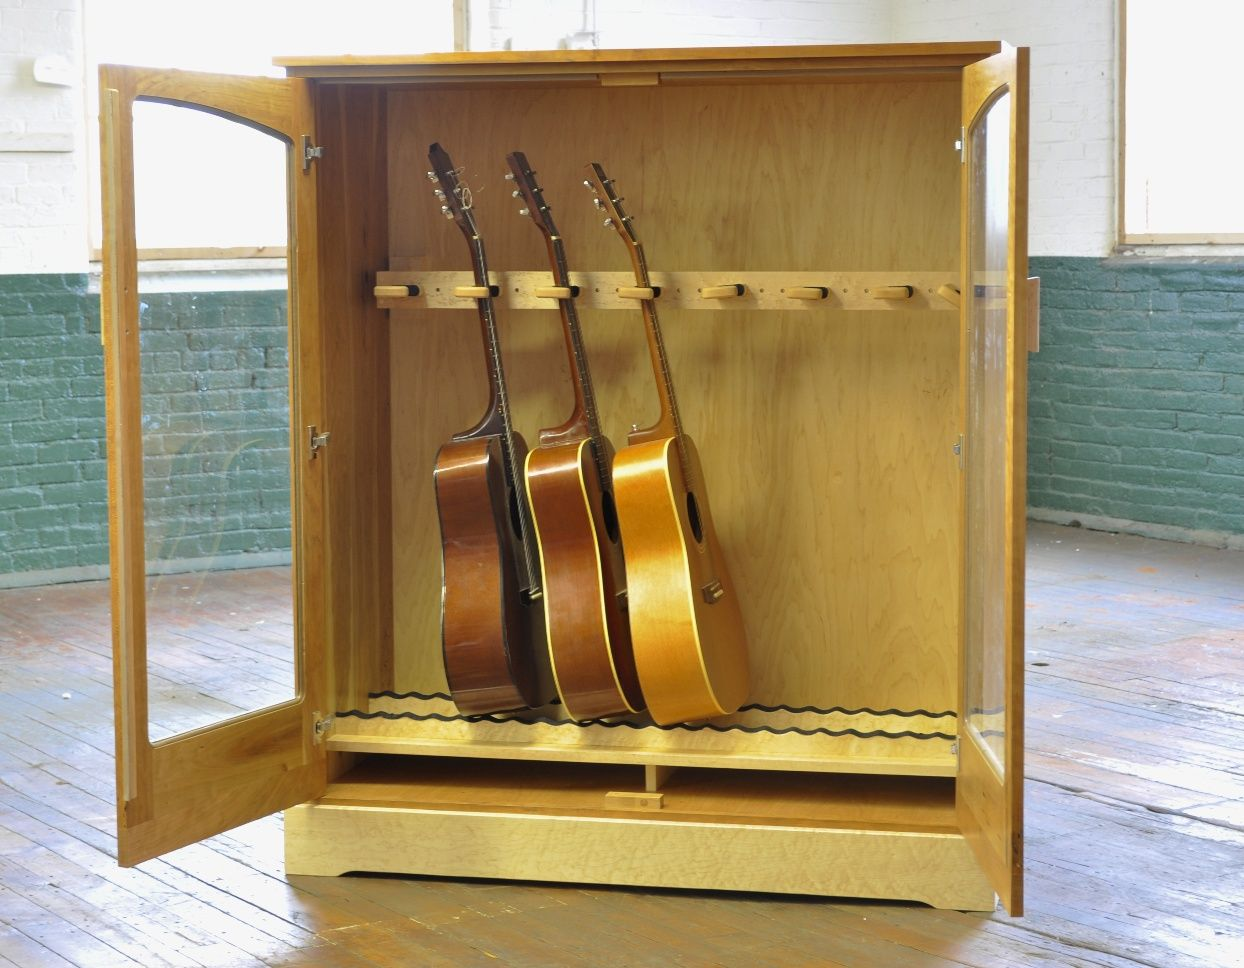 Guitar Display Cabinet Plans Plans DIY Free Download Free Plans . - Guitar Display Cabinet Plans Plans DIY Free Download Free Plans